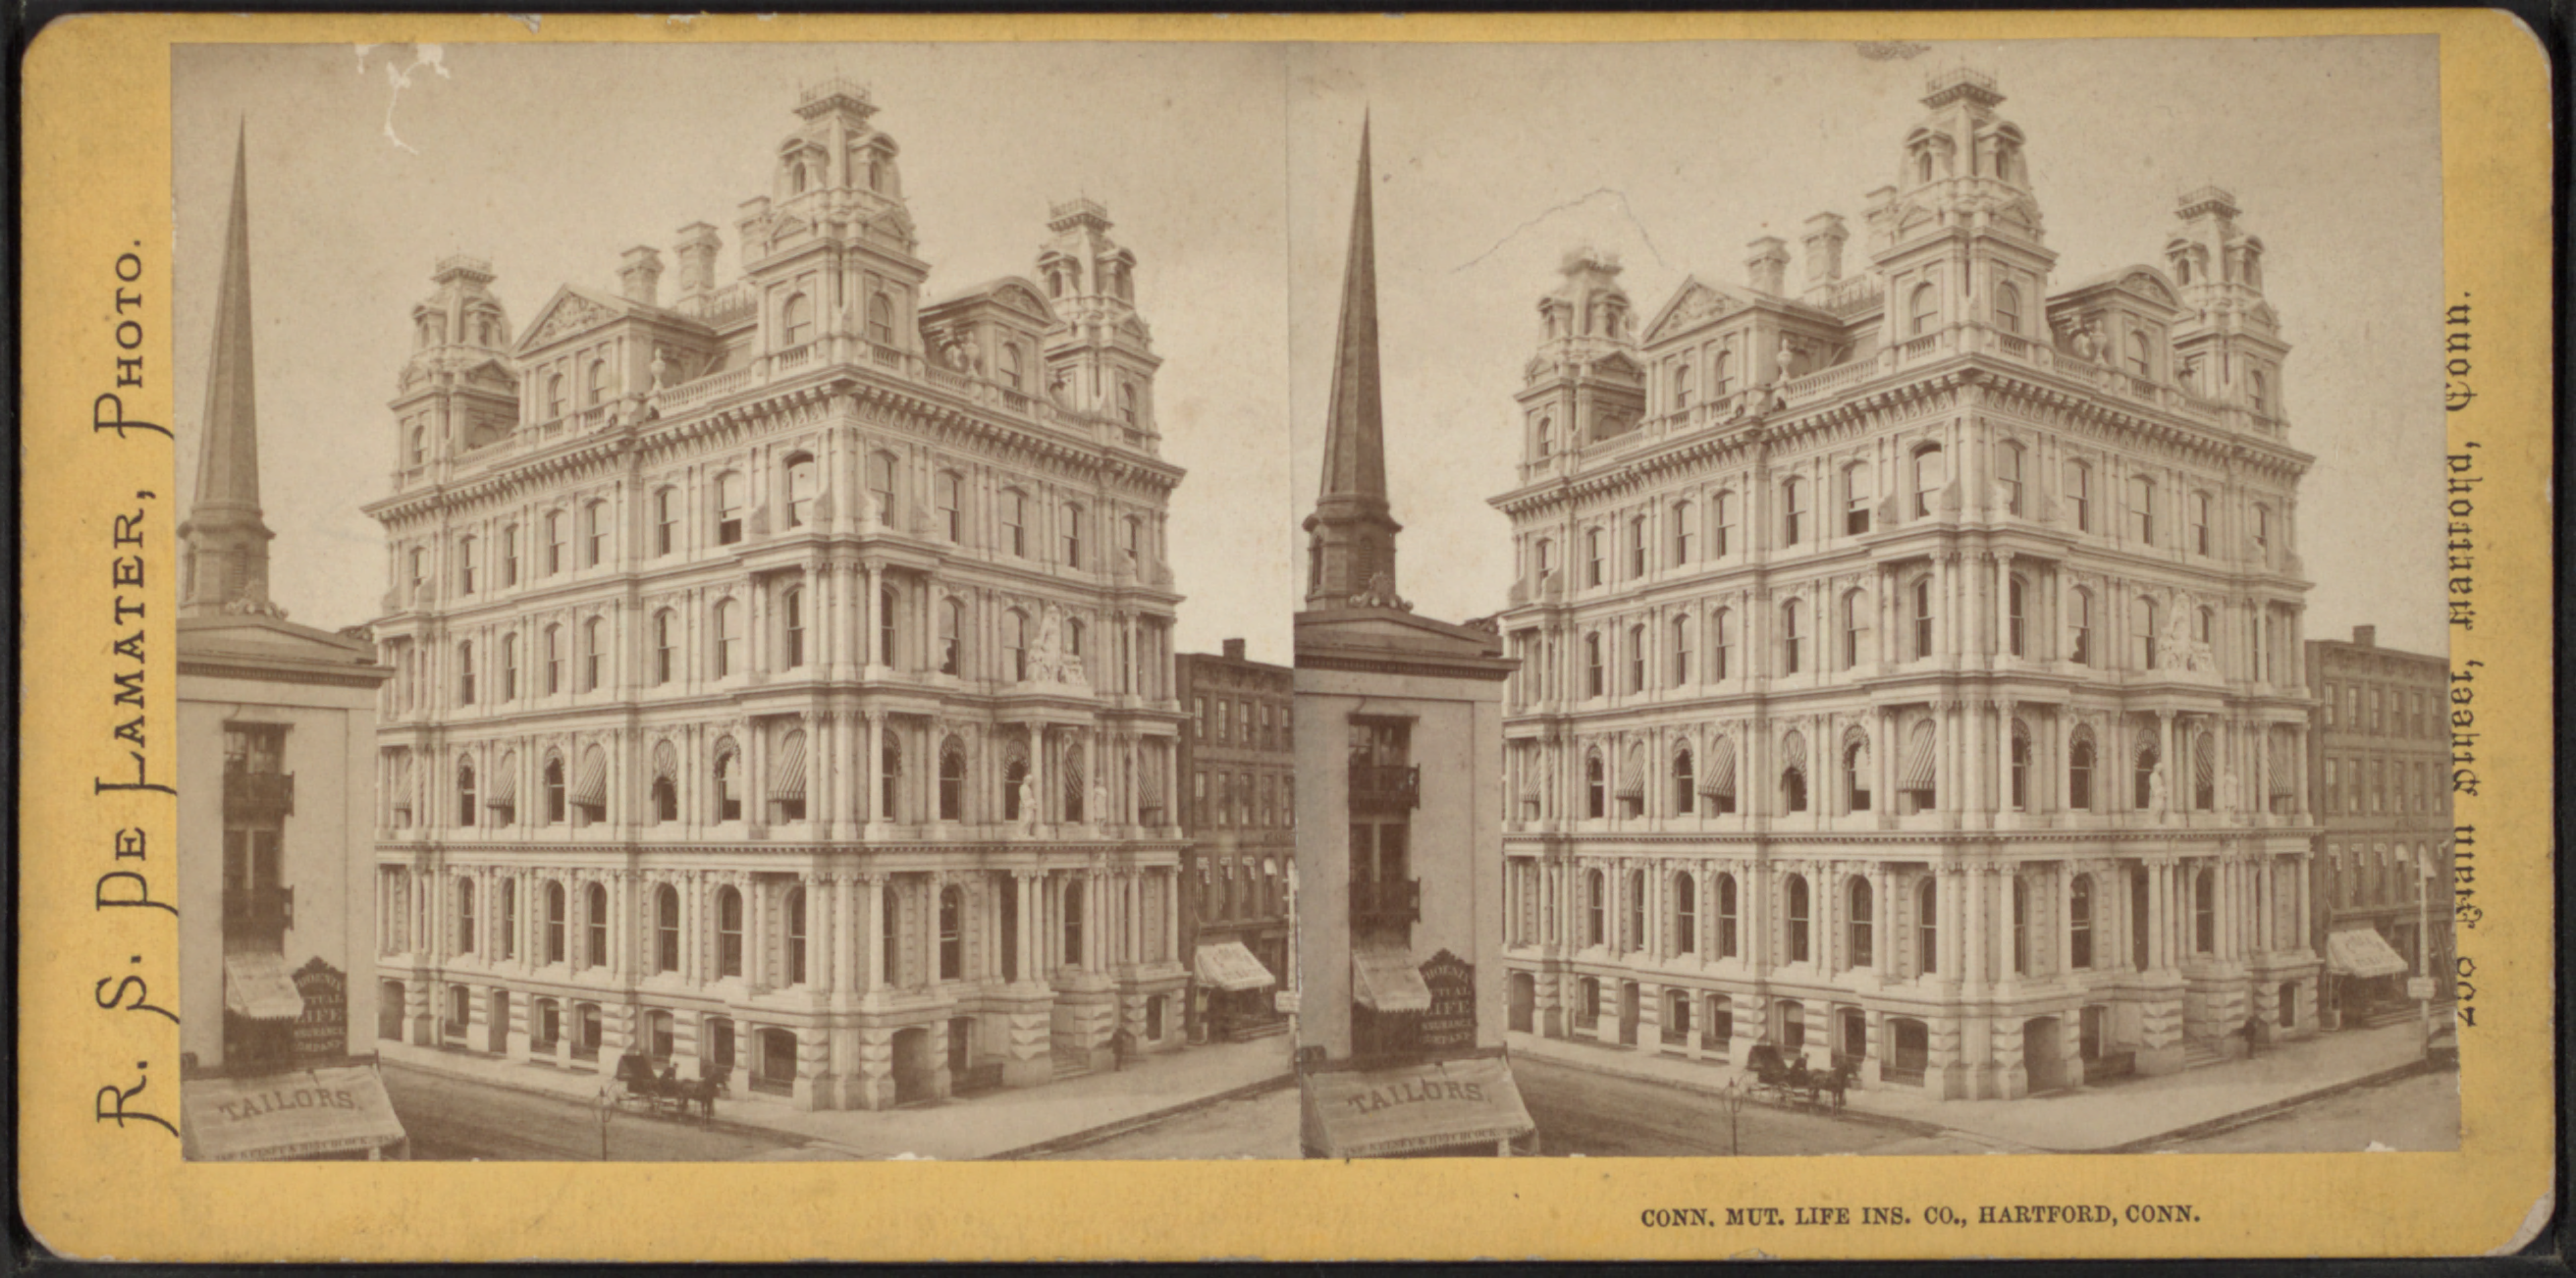 Connecticut Mutual Life File:Connecticut Mutual Life Insurance Company (building), Hartford, Conn, by